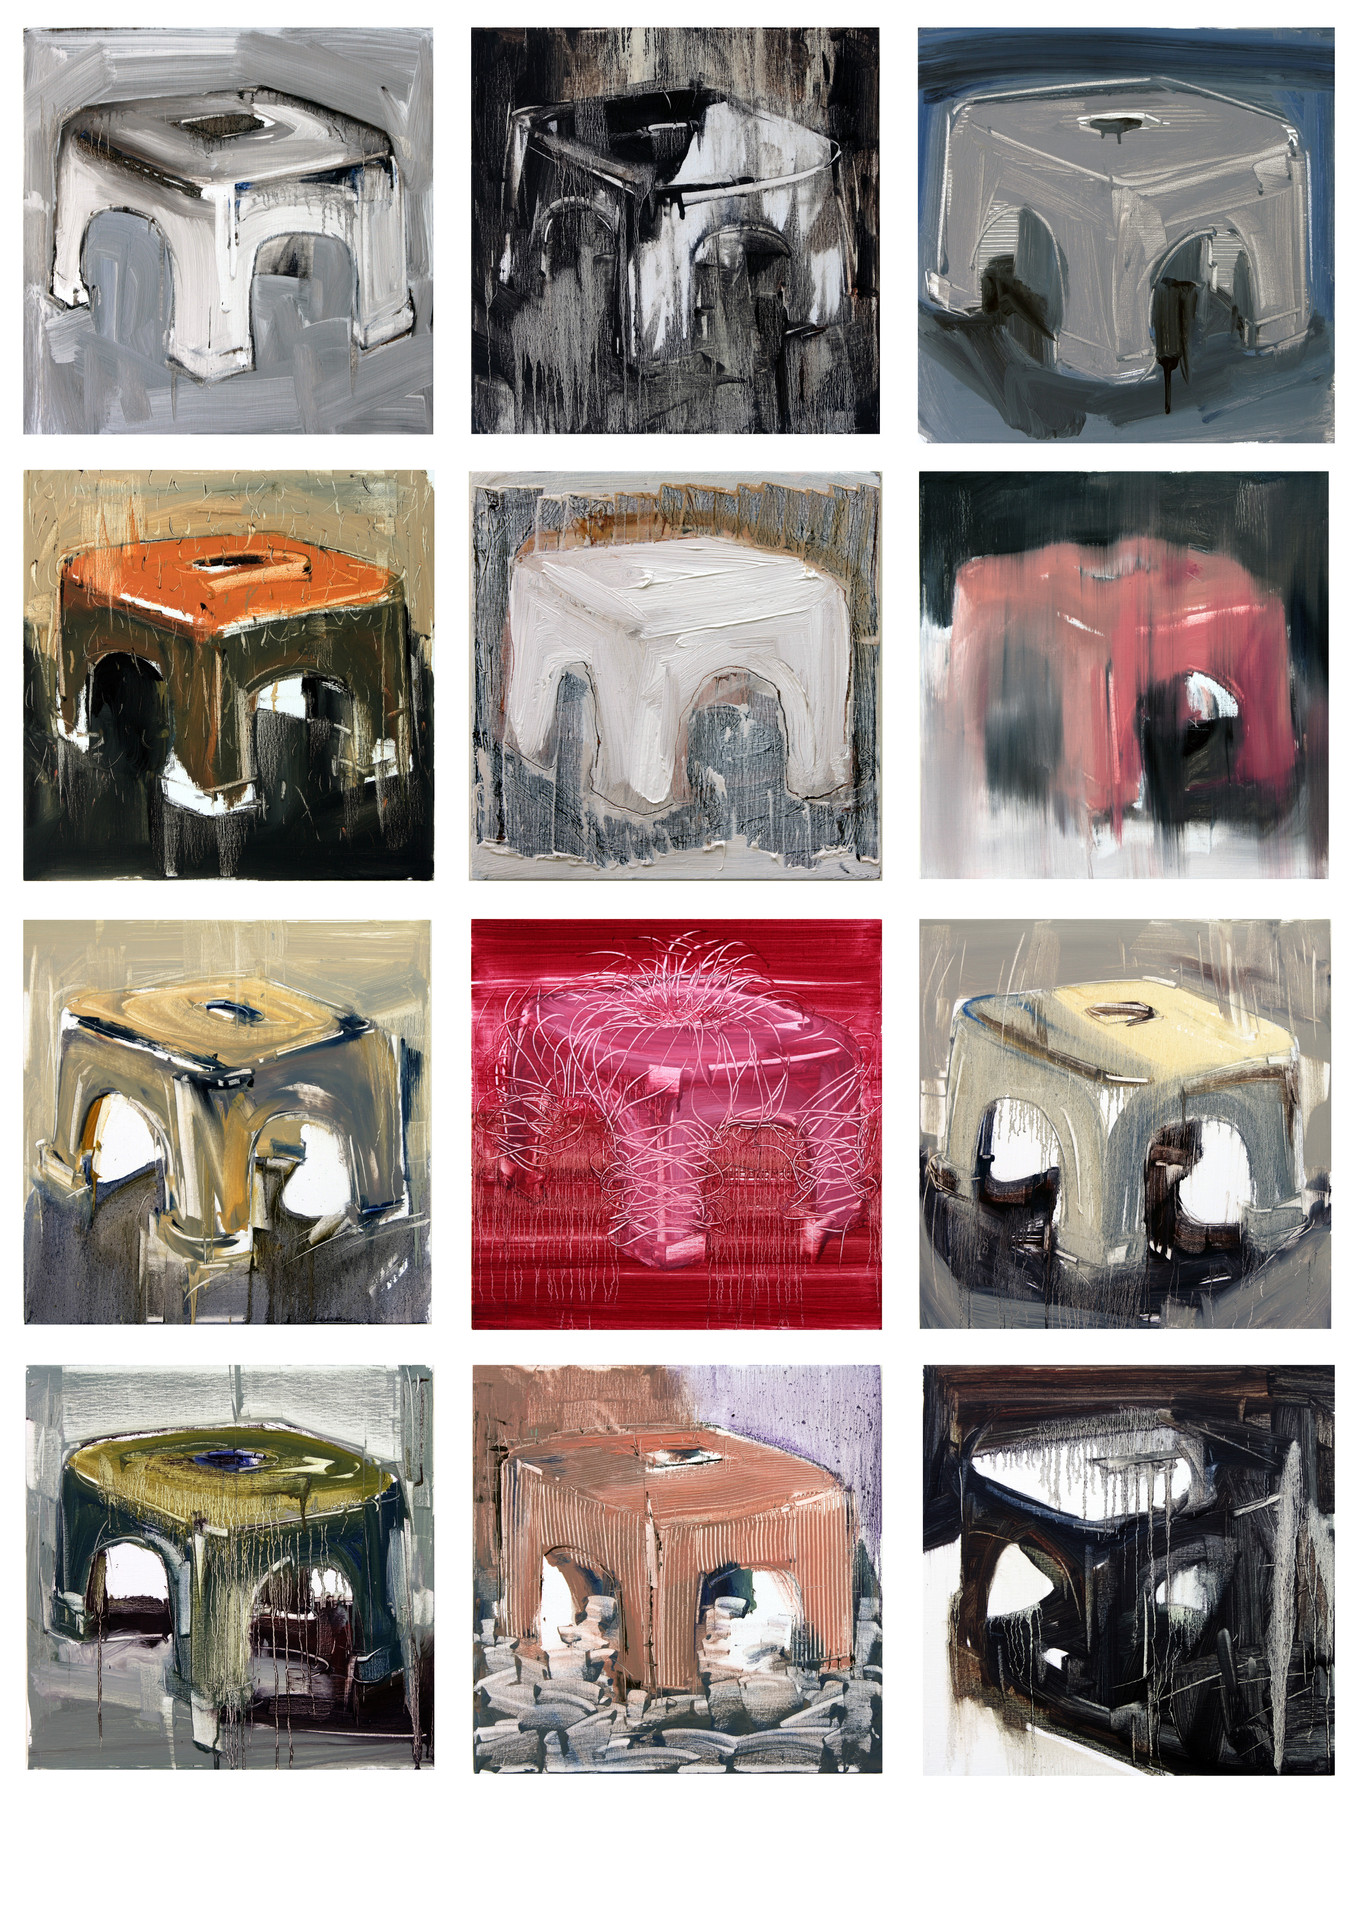 Twelve Apostles III. 2011, oil on canvas, 46x46cm each. Private collection